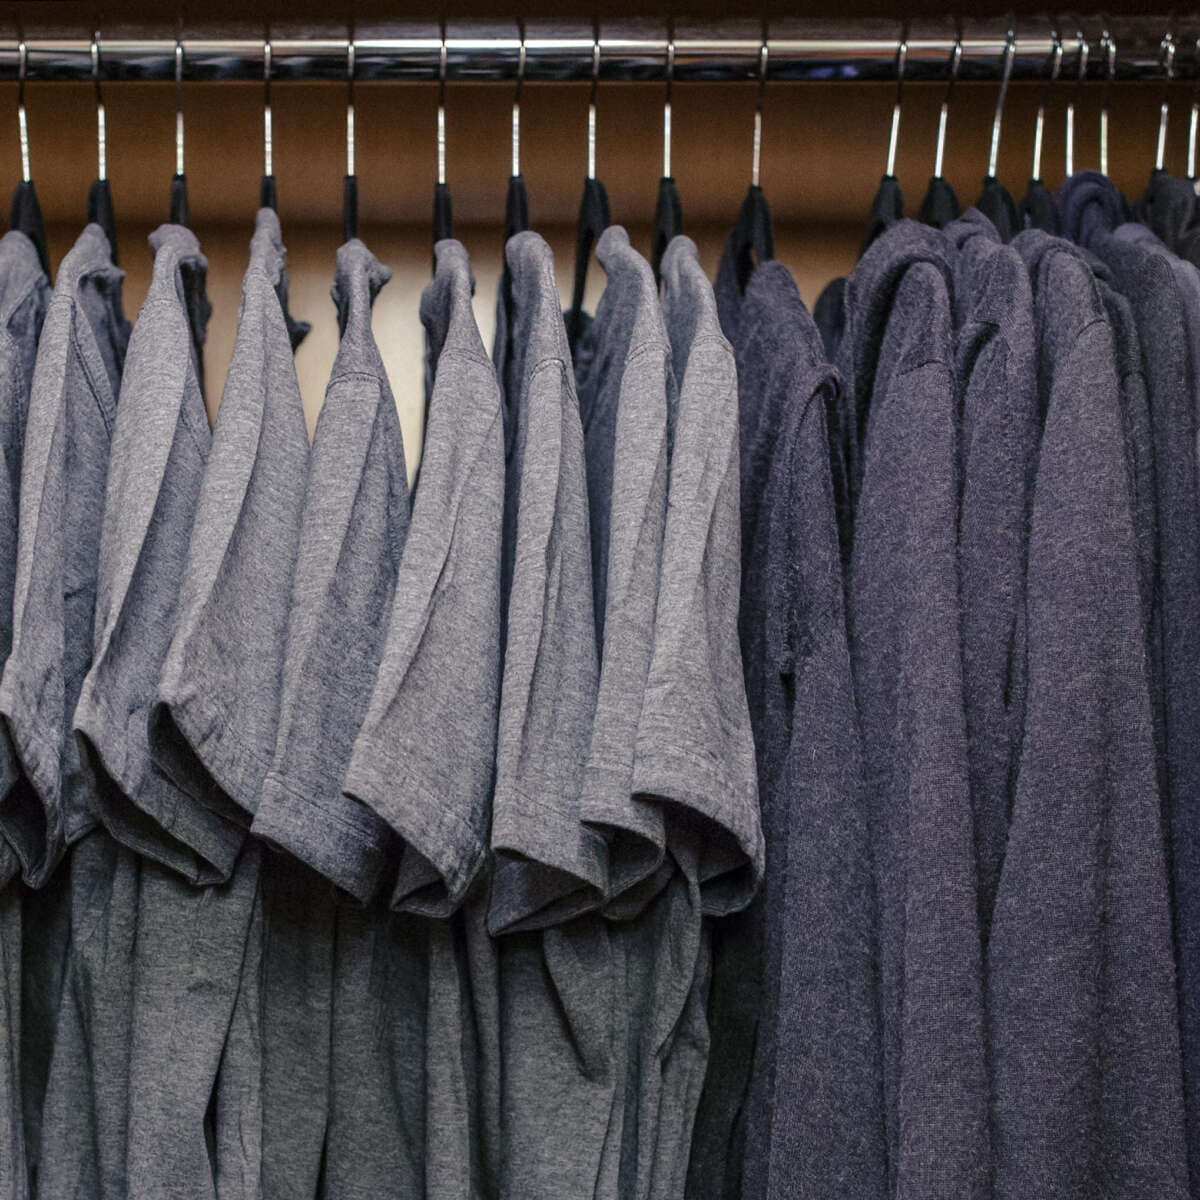 Mark Zuckerberg Grey Tshirt Wardrobe